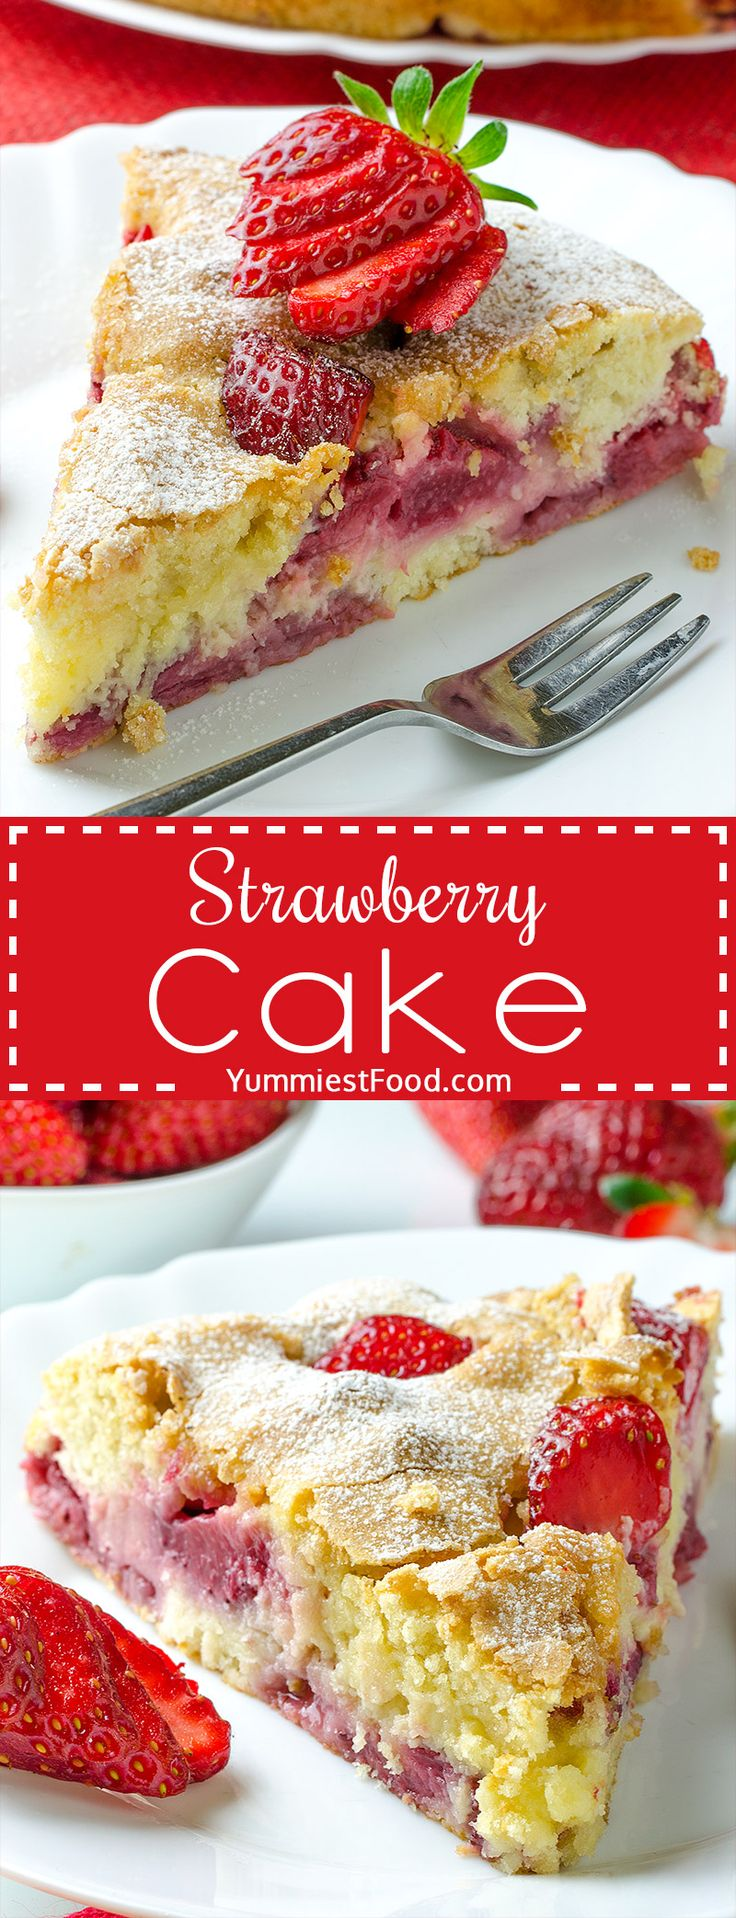 Strawberry Cake is perfect summer dessert! Rich flavor, moist, super tasty and easy to make! You need just few ingredients for this Strawberry Cake and I am sure you will like this sweet sour combination!